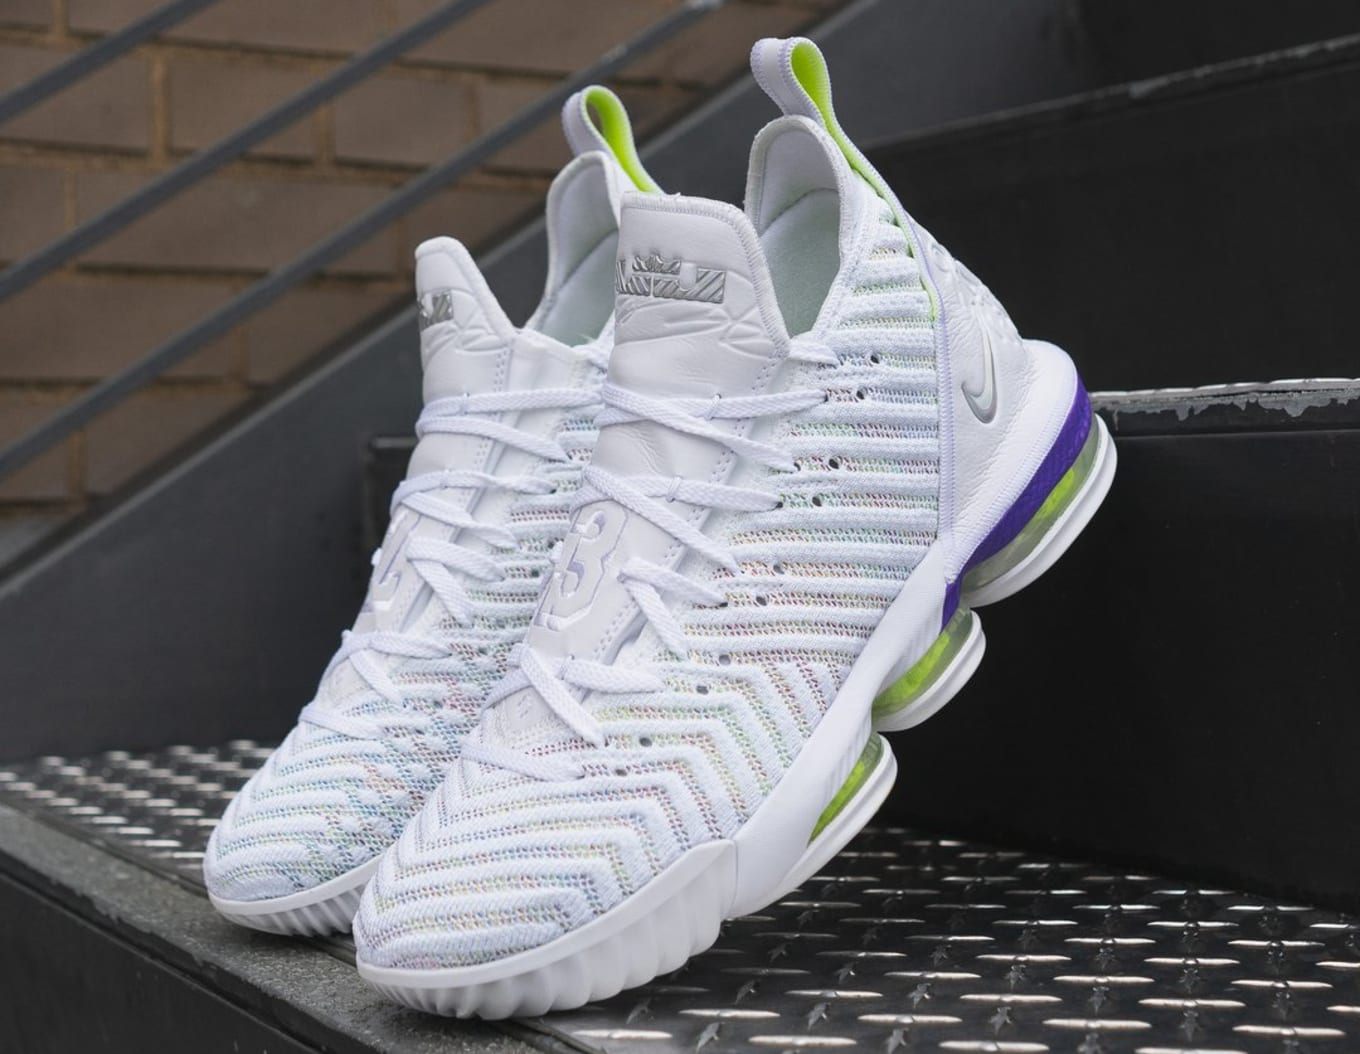 best sneakers 0516b ce2de Nike LeBron 16 White/Multicolor-Hyper Grape-Volt AO2588-102 ...